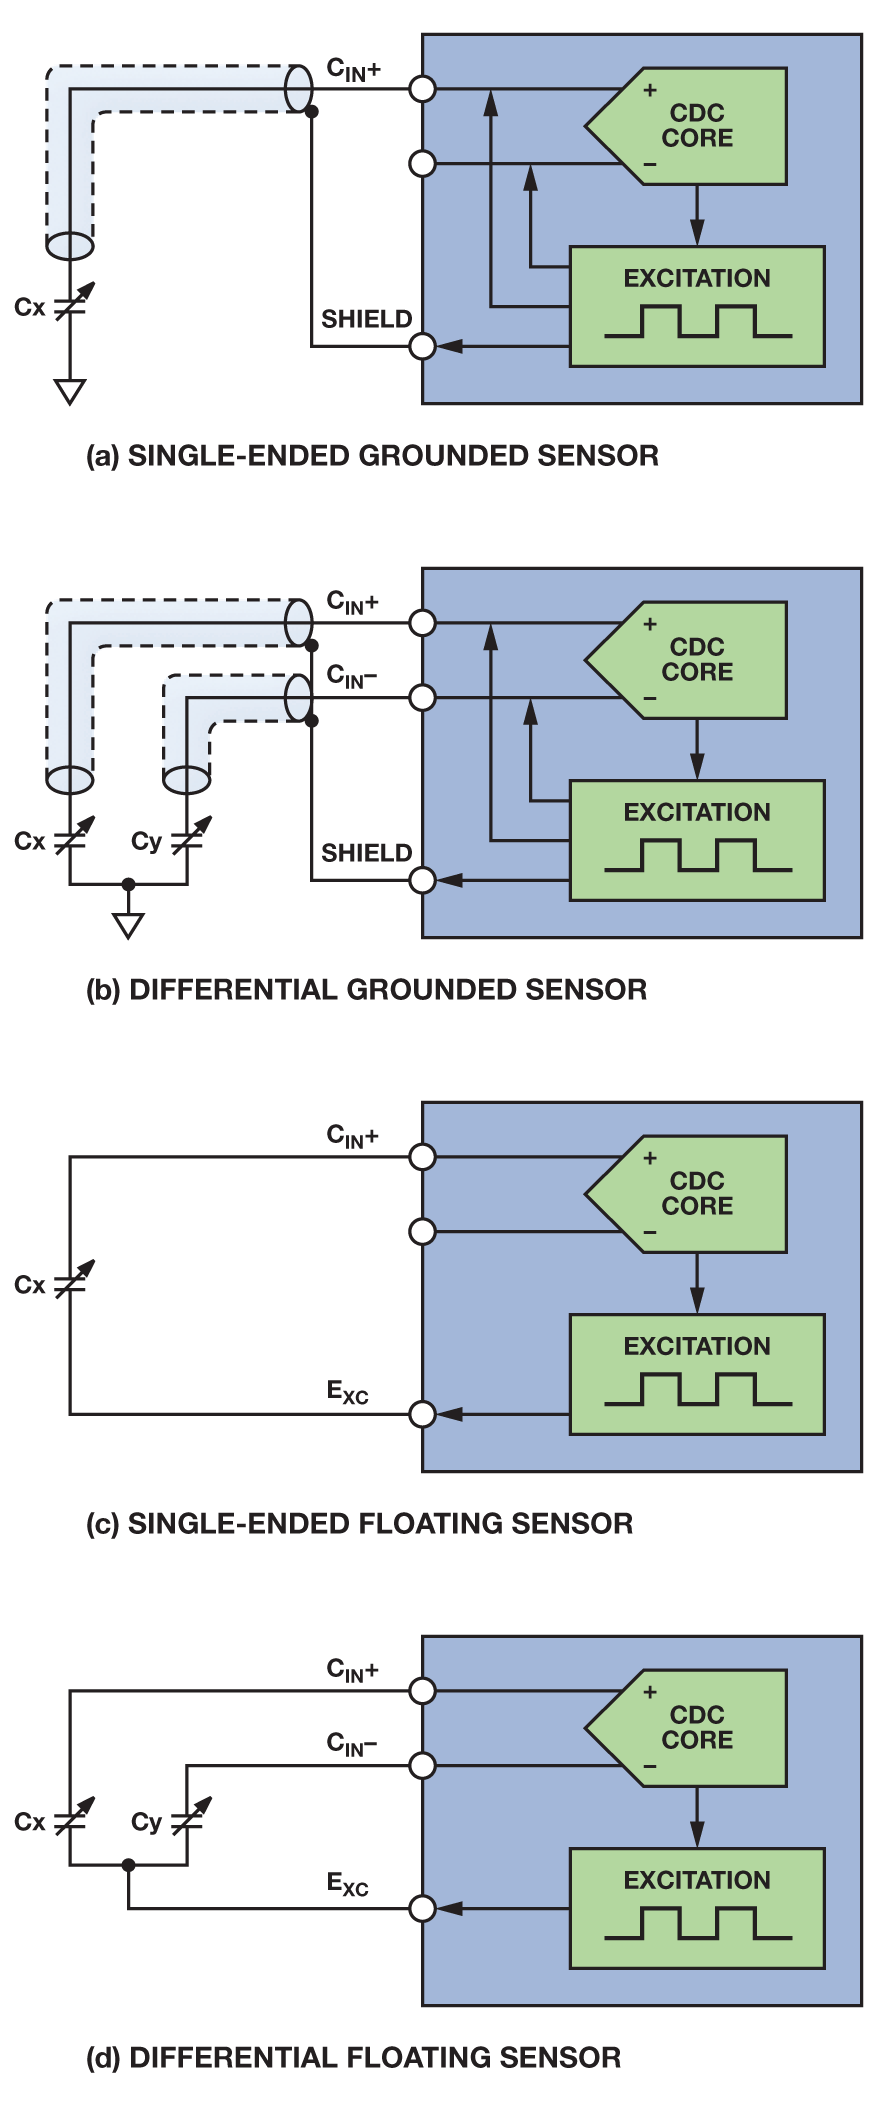 hight resolution of configurations for single ended differential grounded and floating sensor applications